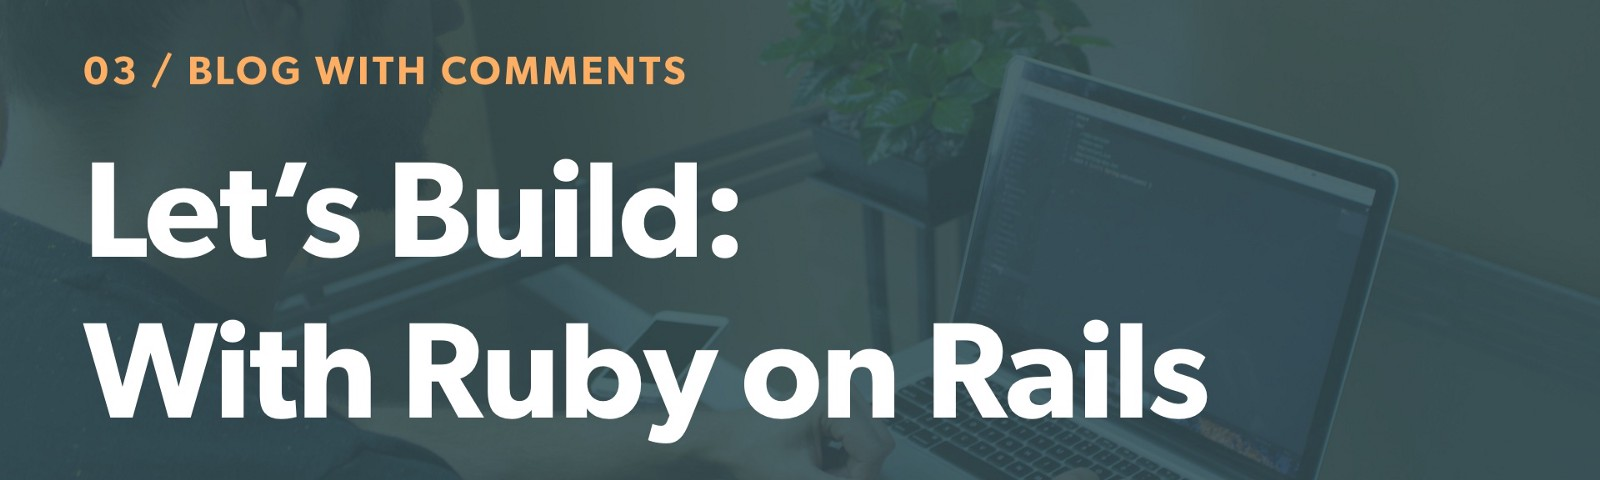 Let's Build: With Ruby on Rails - A Blog with Comments – Web-Crunch